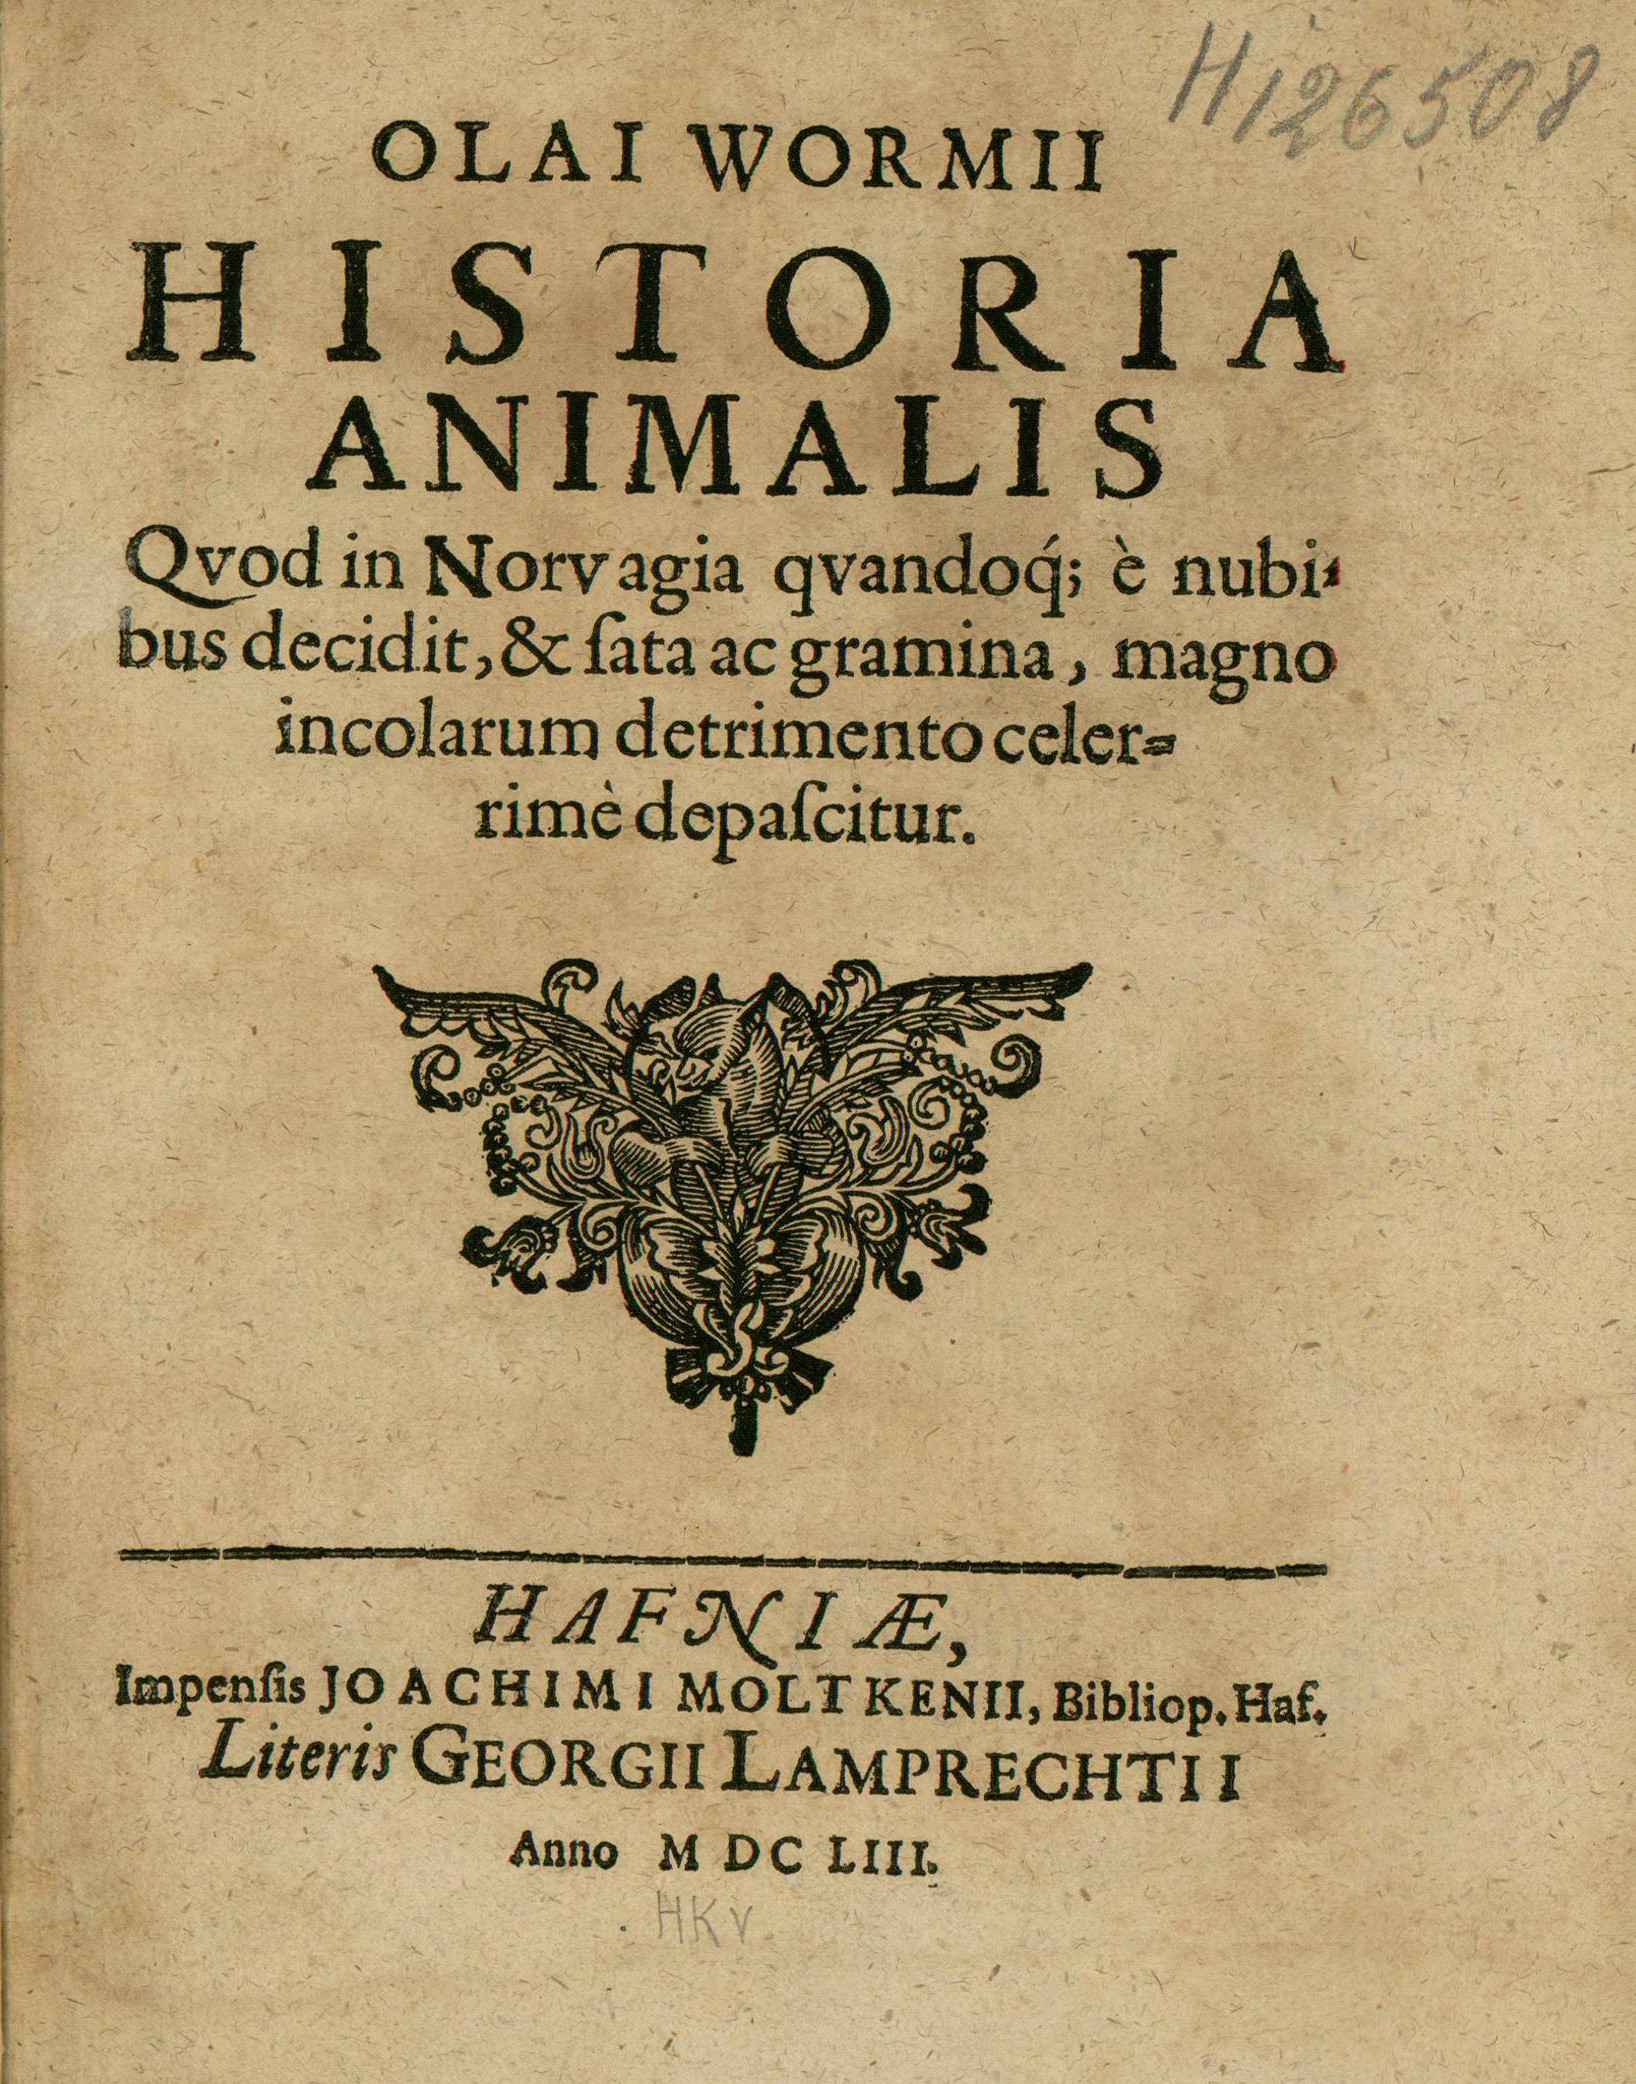 http://docnum.unistra.fr/cdm/ref/collection/coll6/id/7677